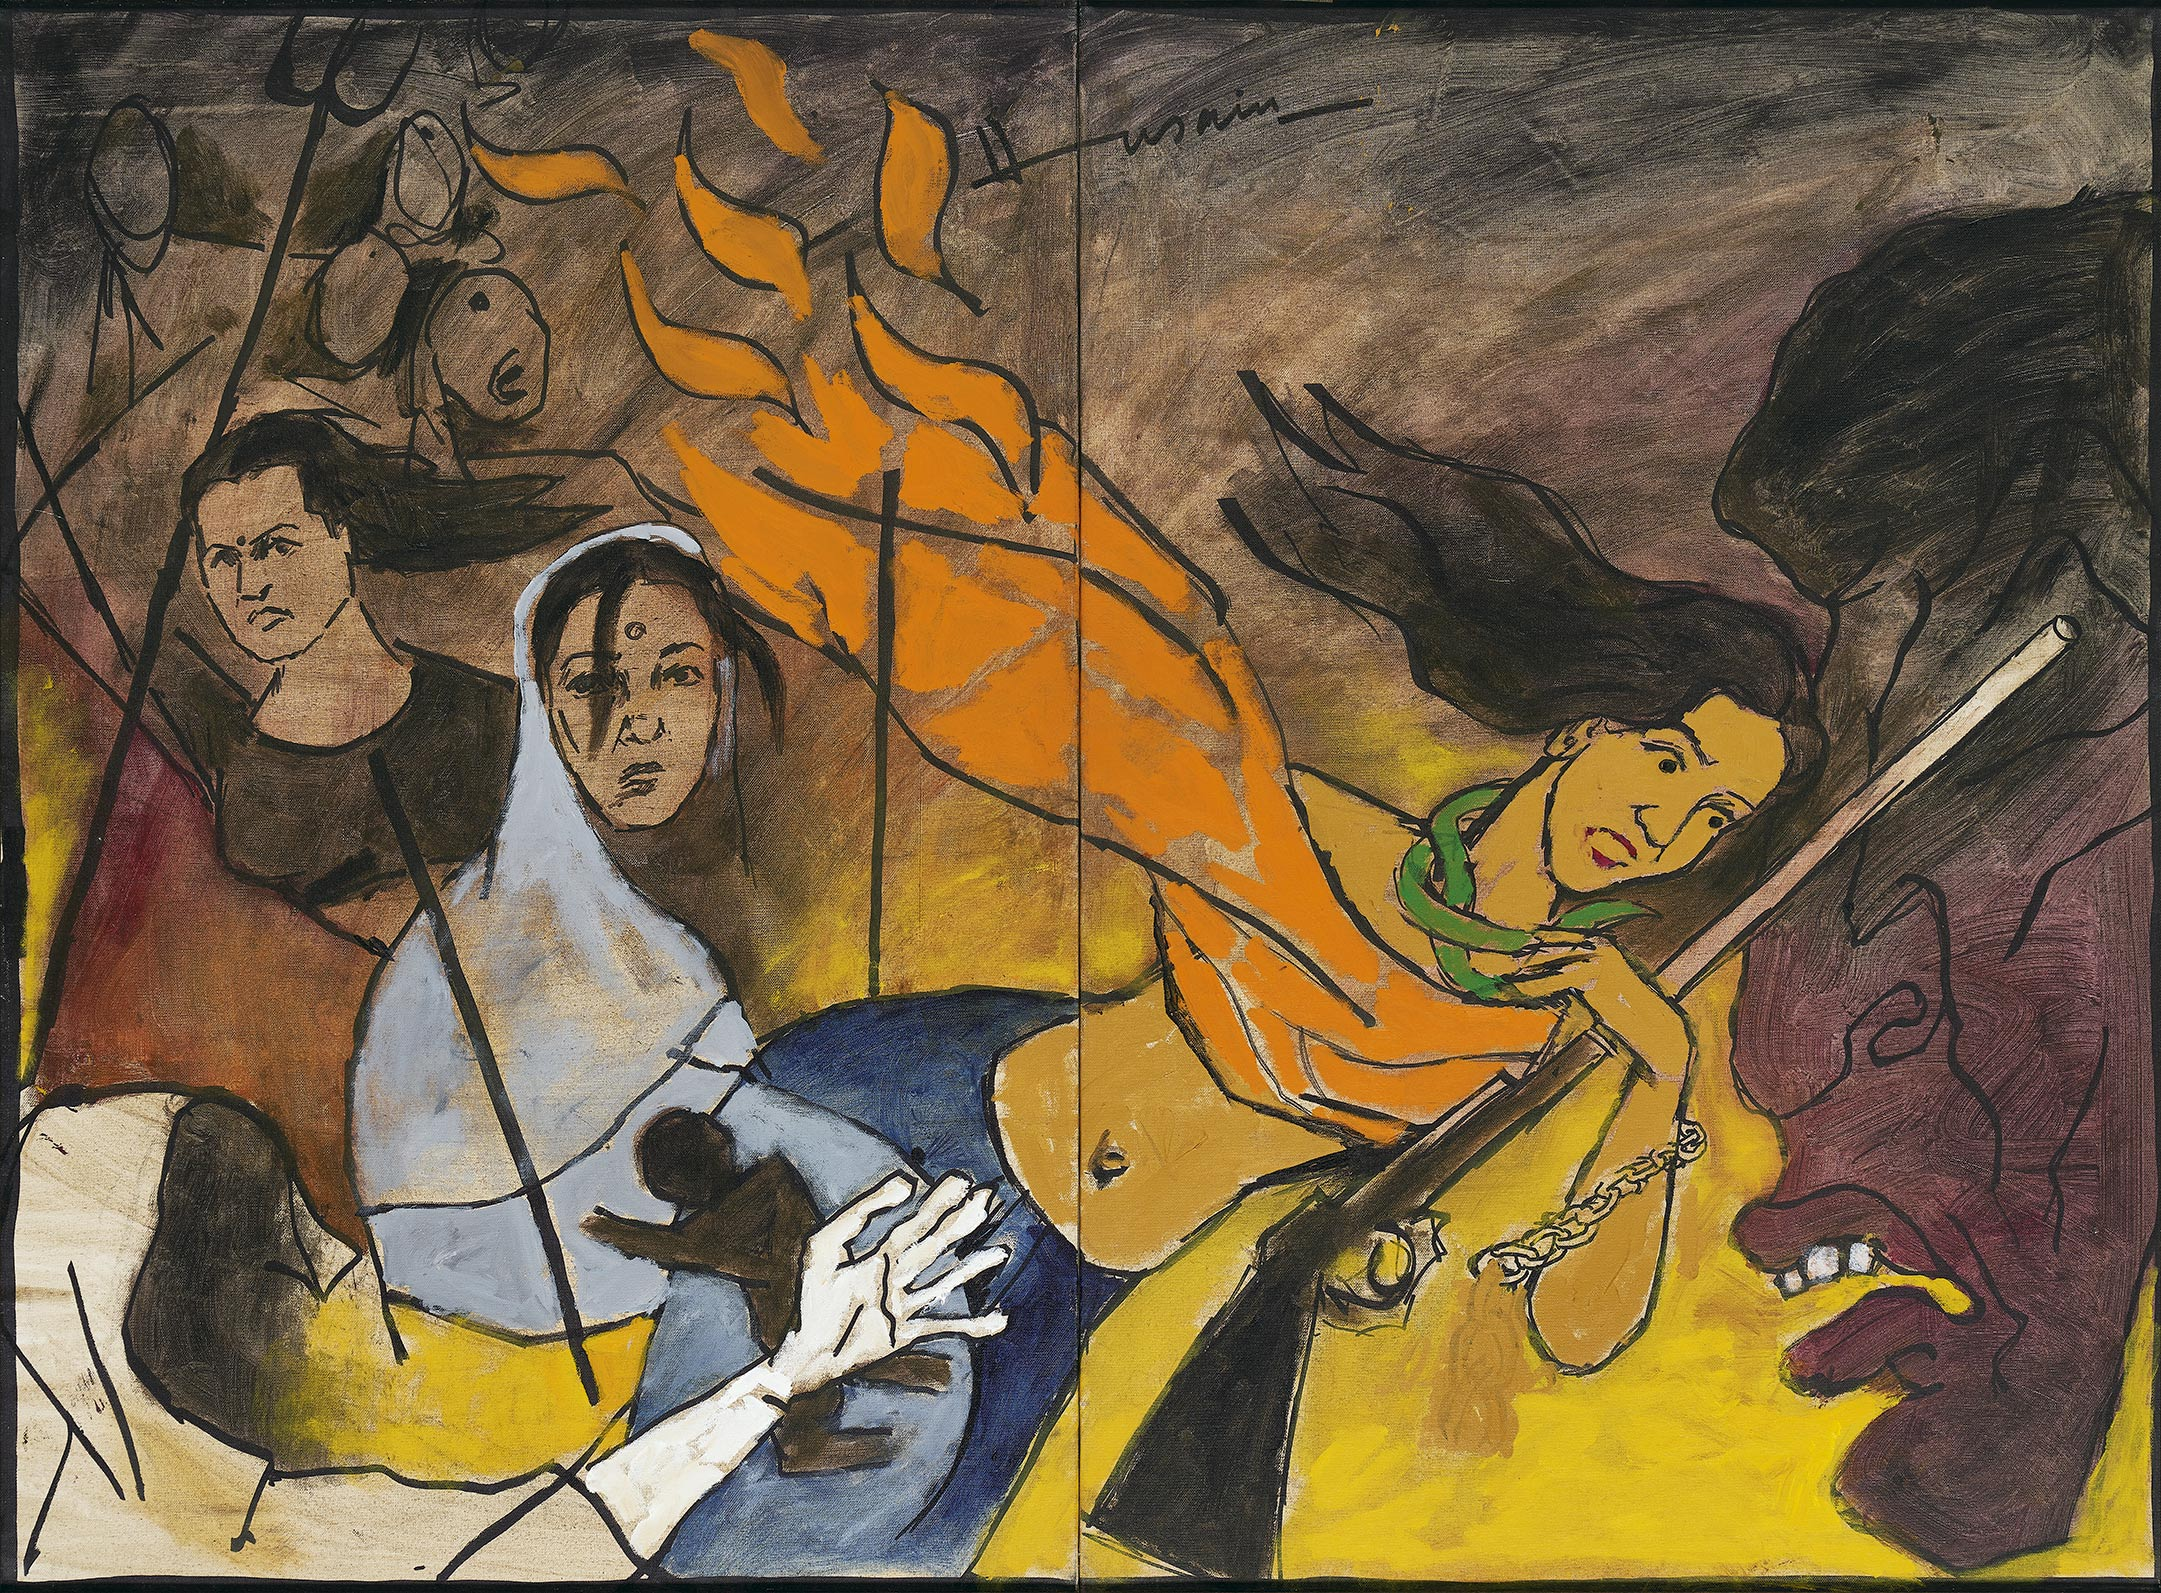 From Souza to Sher-Gil: 5 incredible works up for grabs at Astaguru's auctions this week